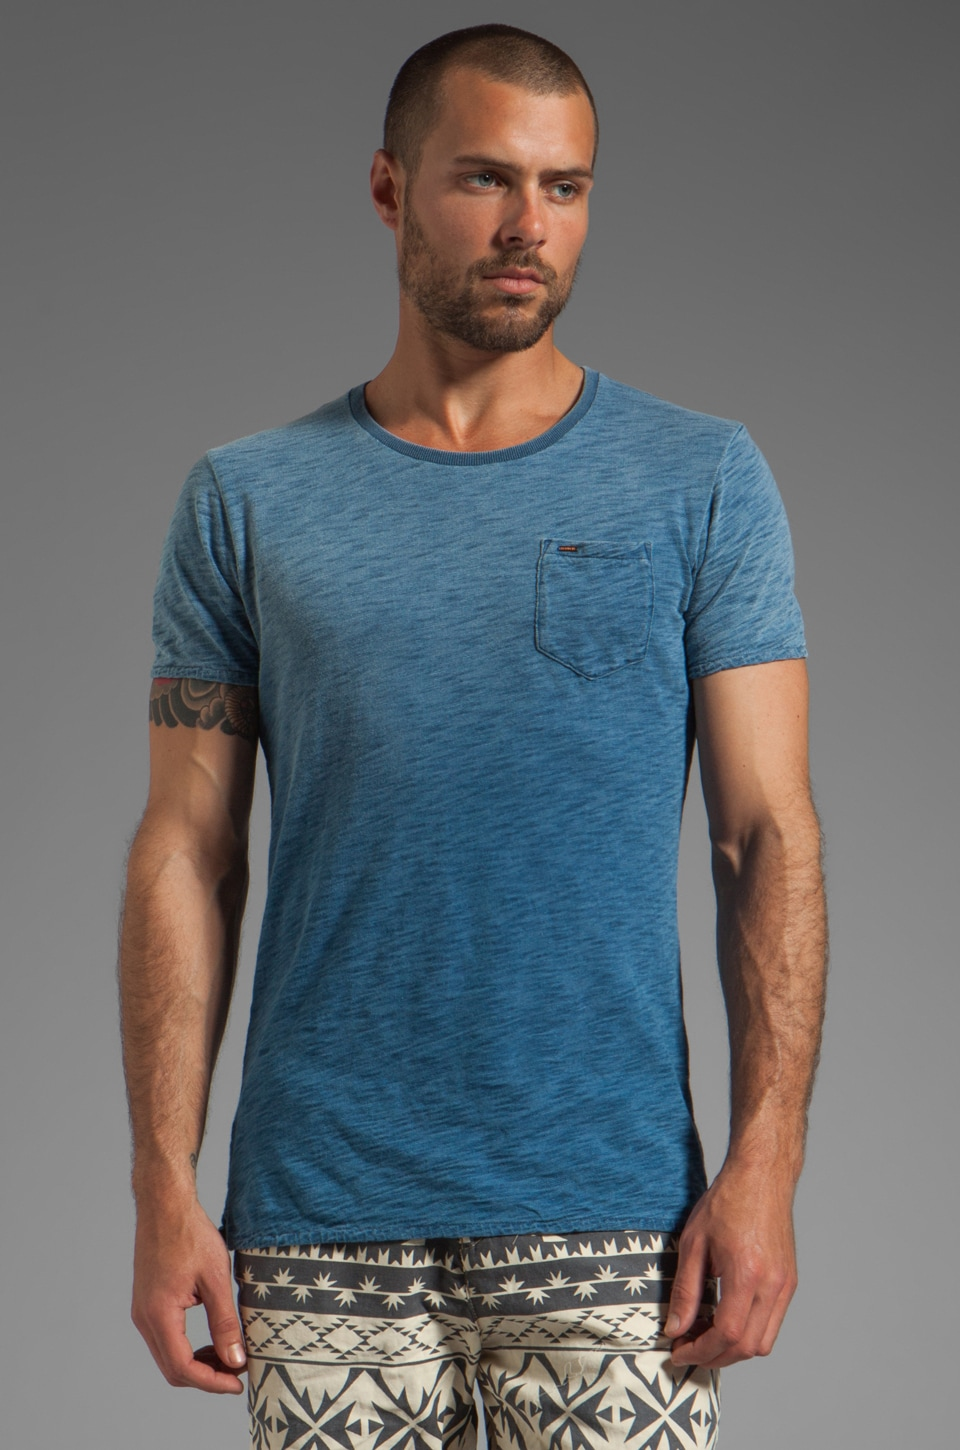 Scotch & Soda Crew Tee in Washed Indigo